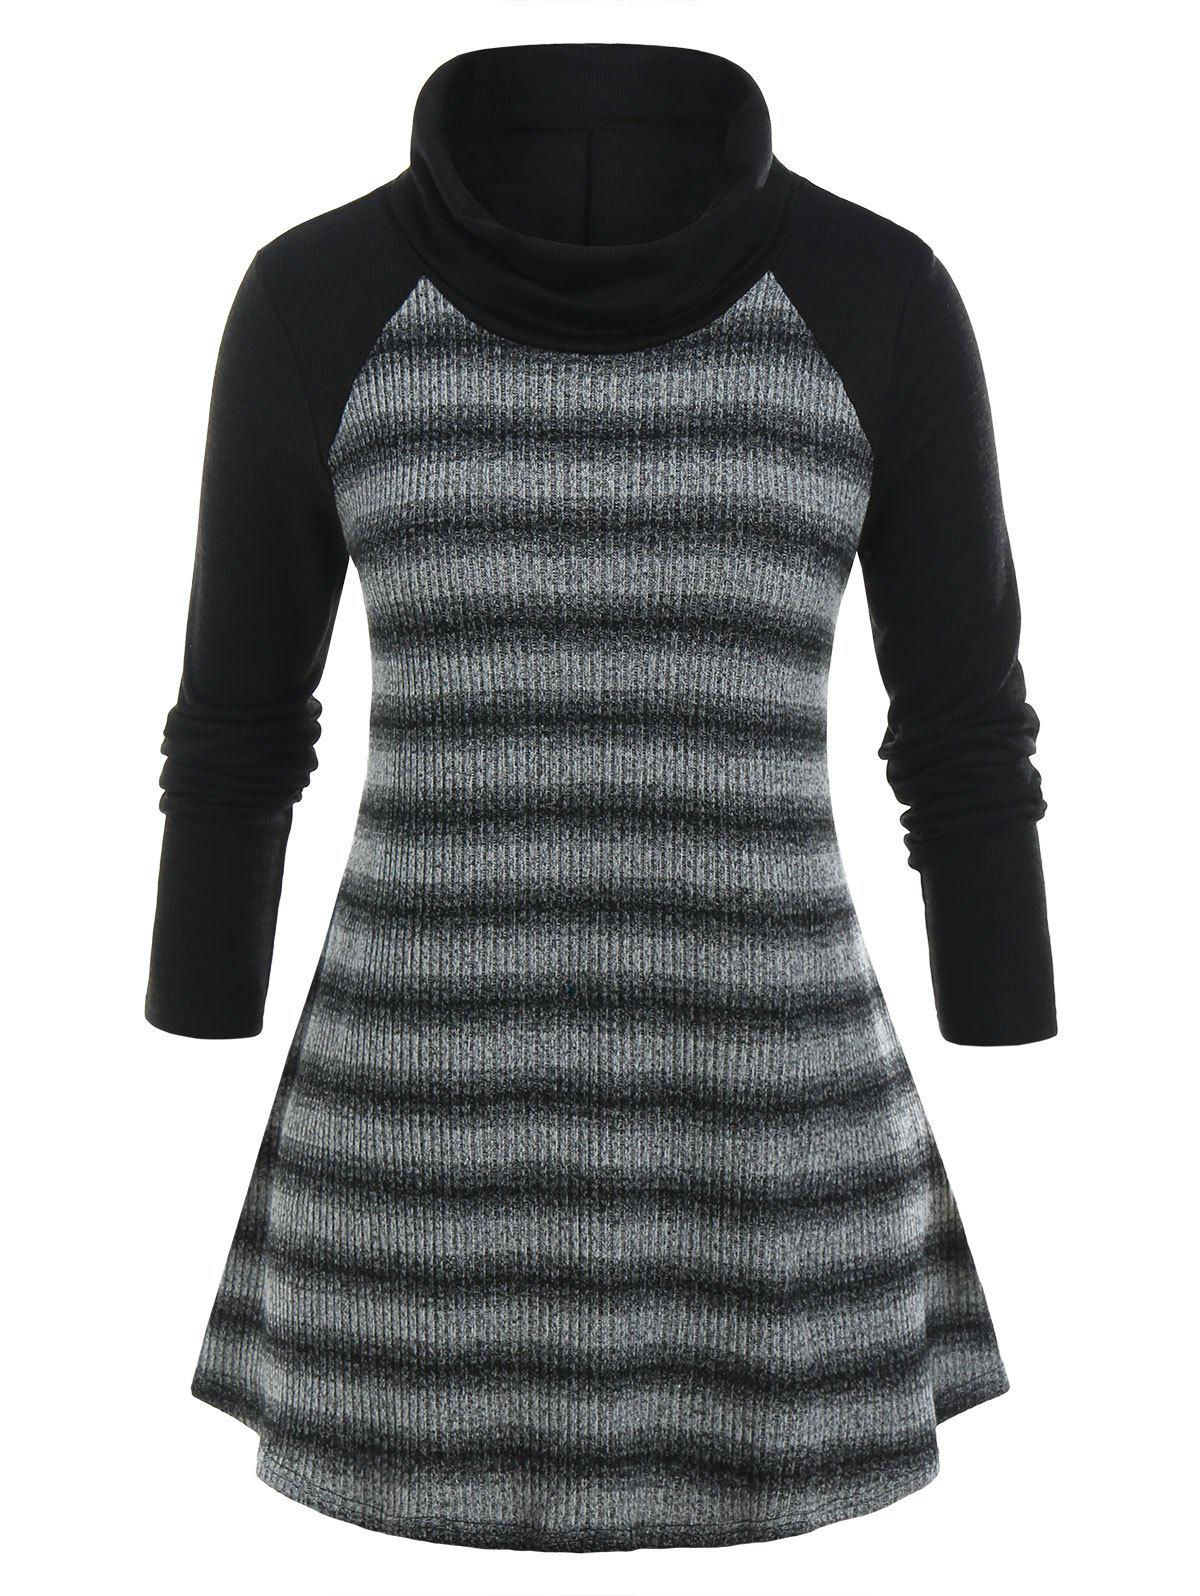 Plus Size Marled Striped Turtleneck Tunic Sweater - BLACK 5X